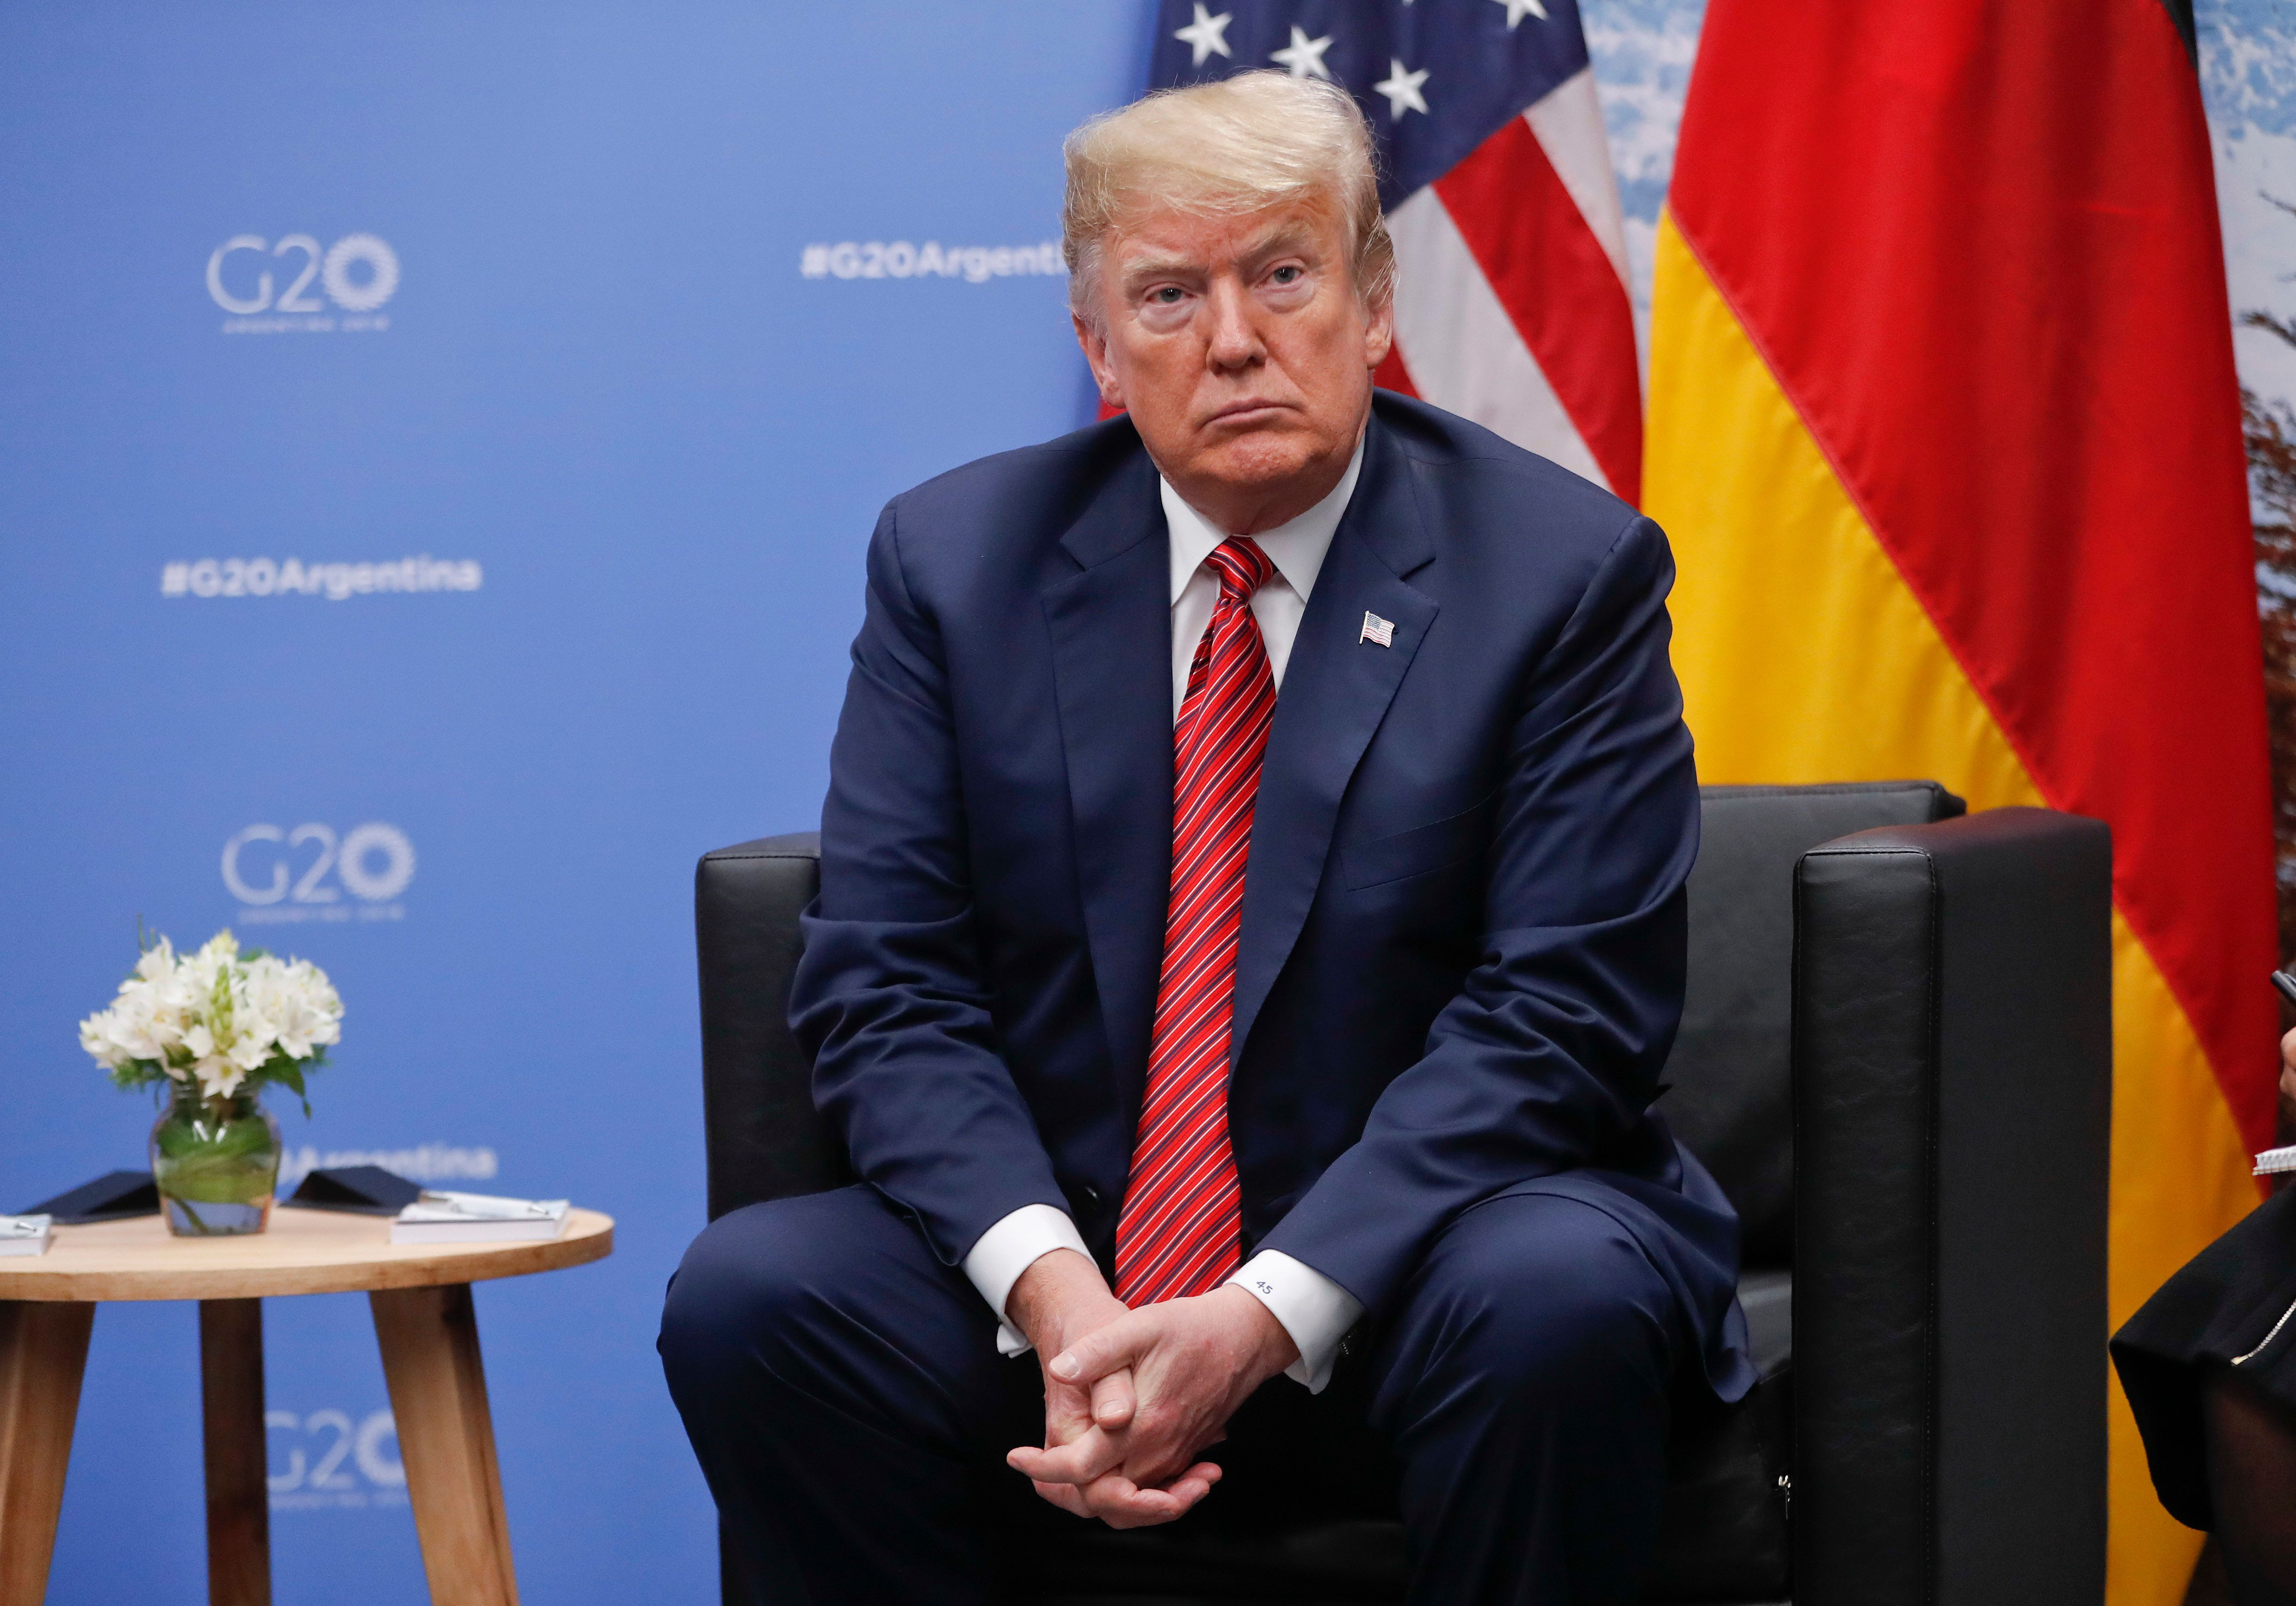 G-20 Nations Agree On Trade, Migration; Trump Lone Holdout On Climate Change